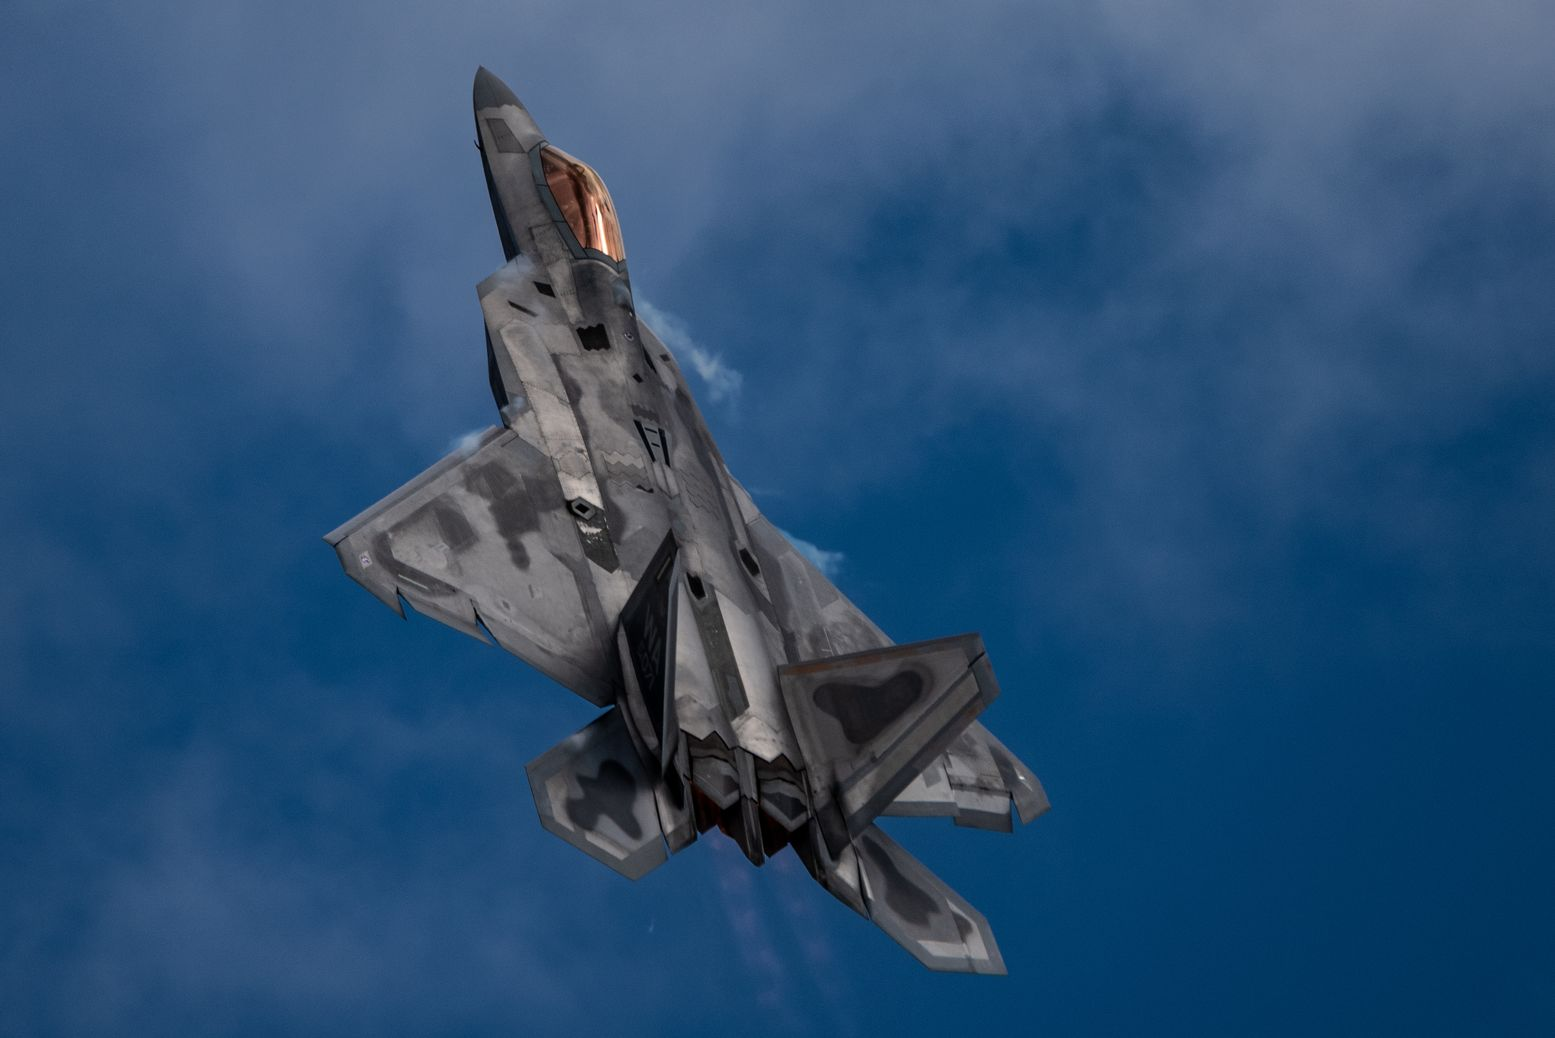 China Says It Could Locate and Kill Any F-22 or F-35, but Is It True?